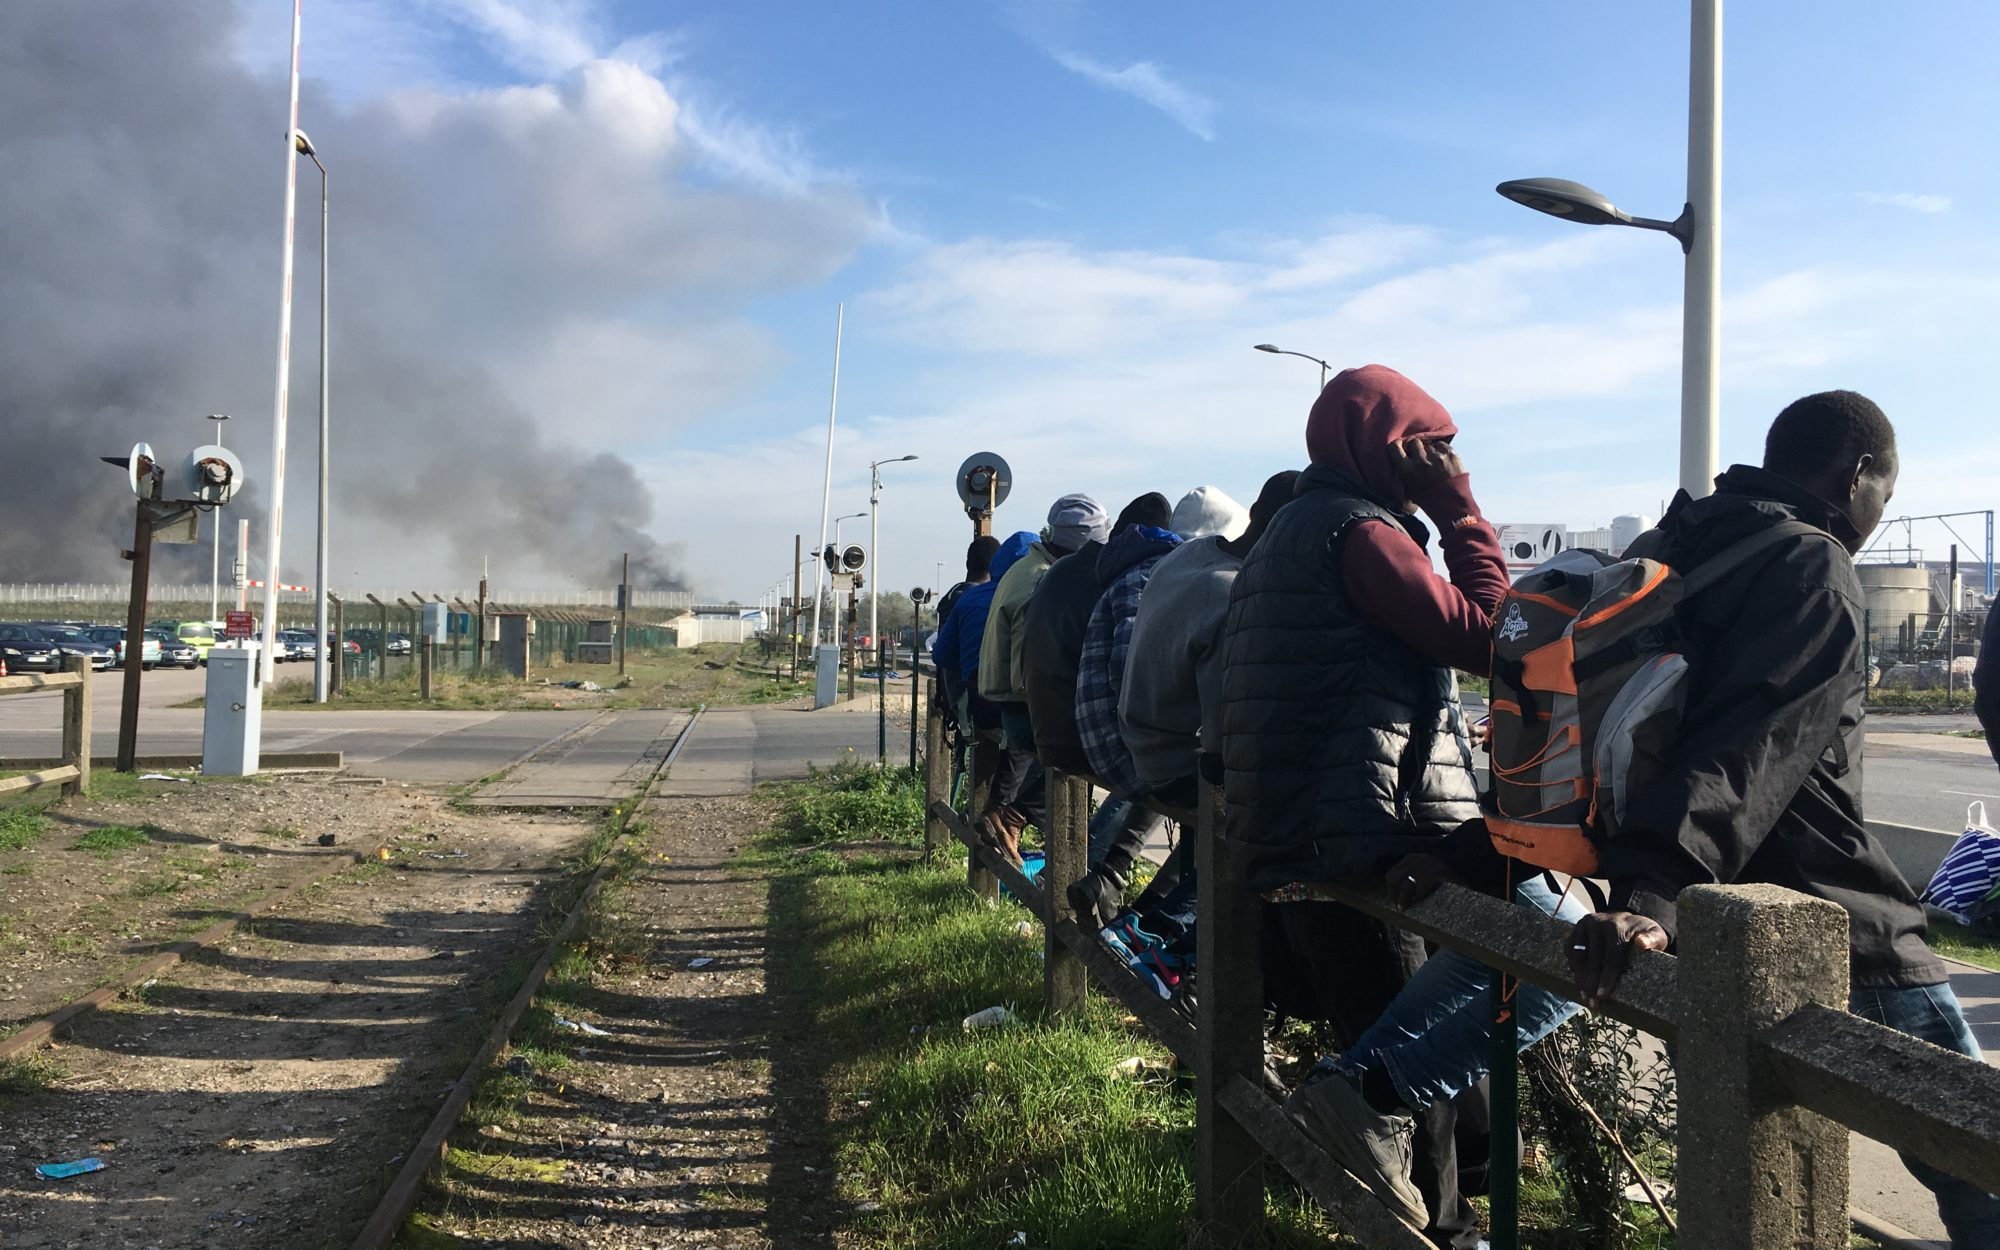 It Can Be Done migrant law podcast - a row of refugee men sitting on a fence by a railway track